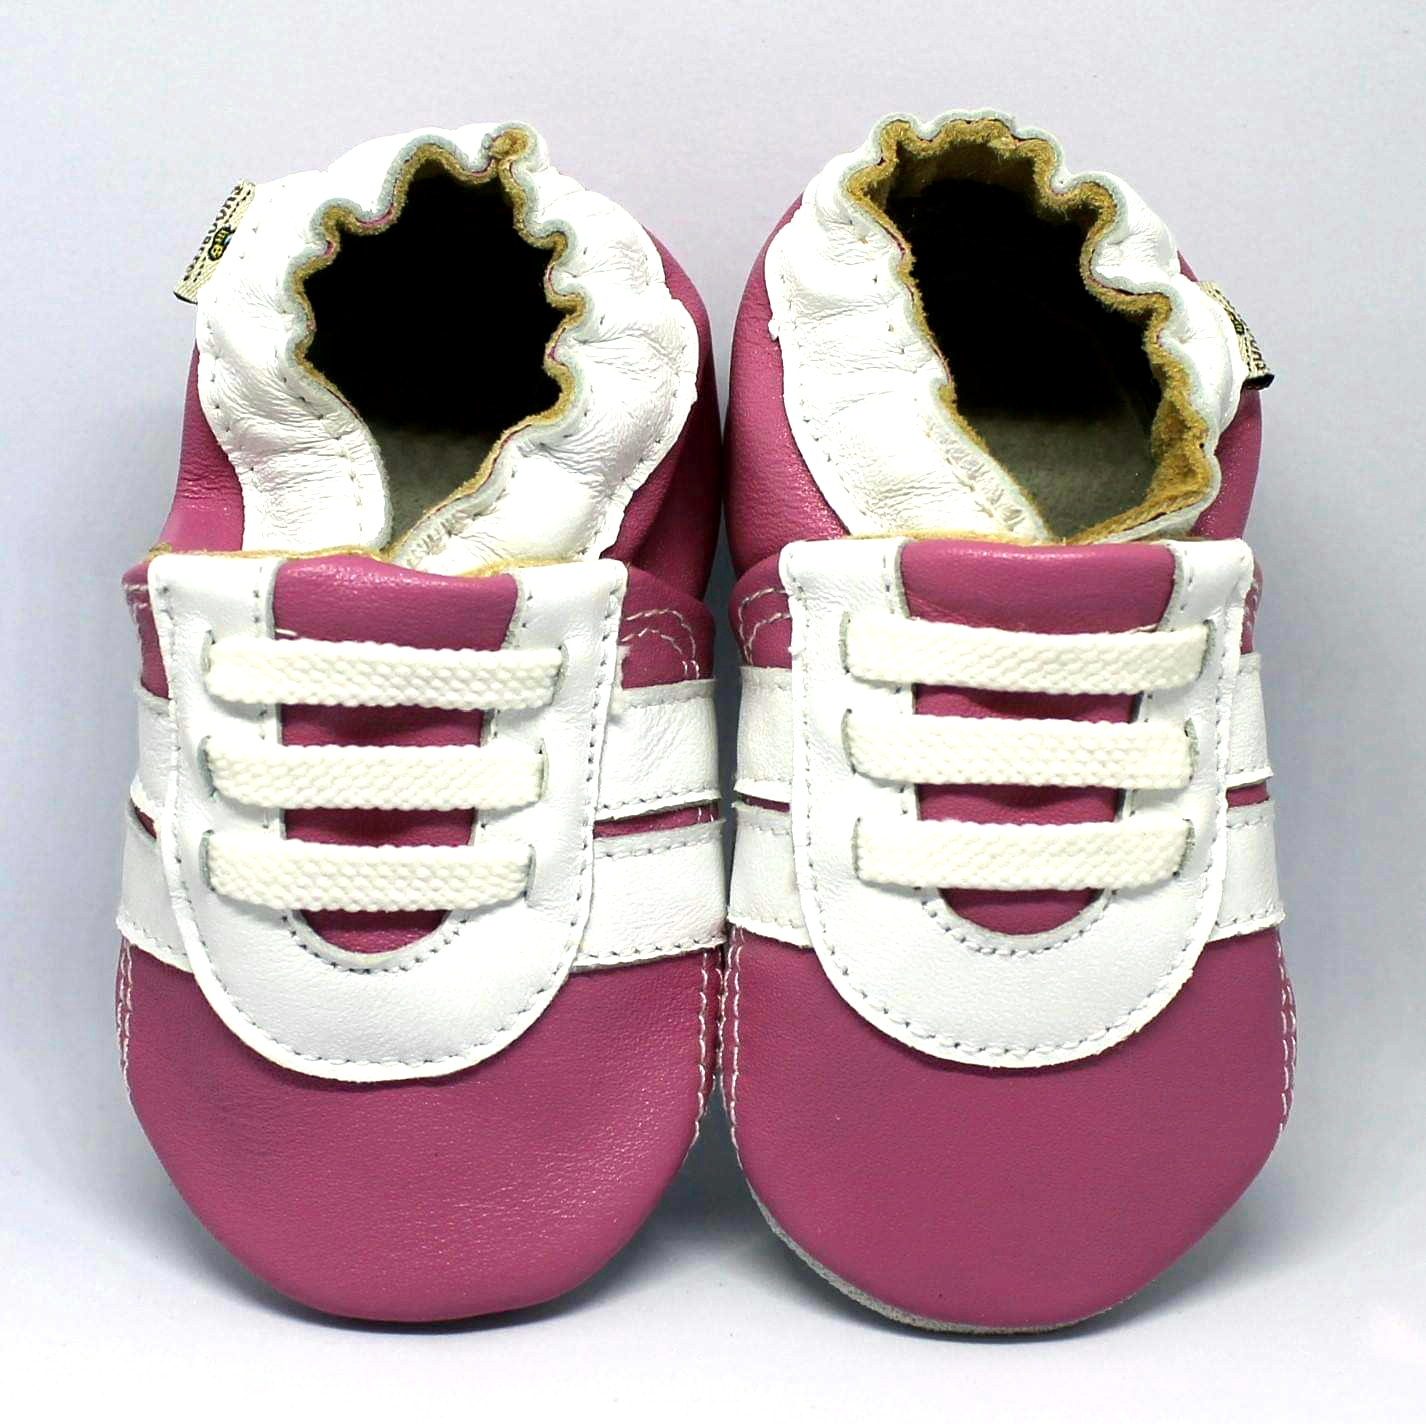 Pink \u0026 White Runners - SHOOBEES Baby Shoes